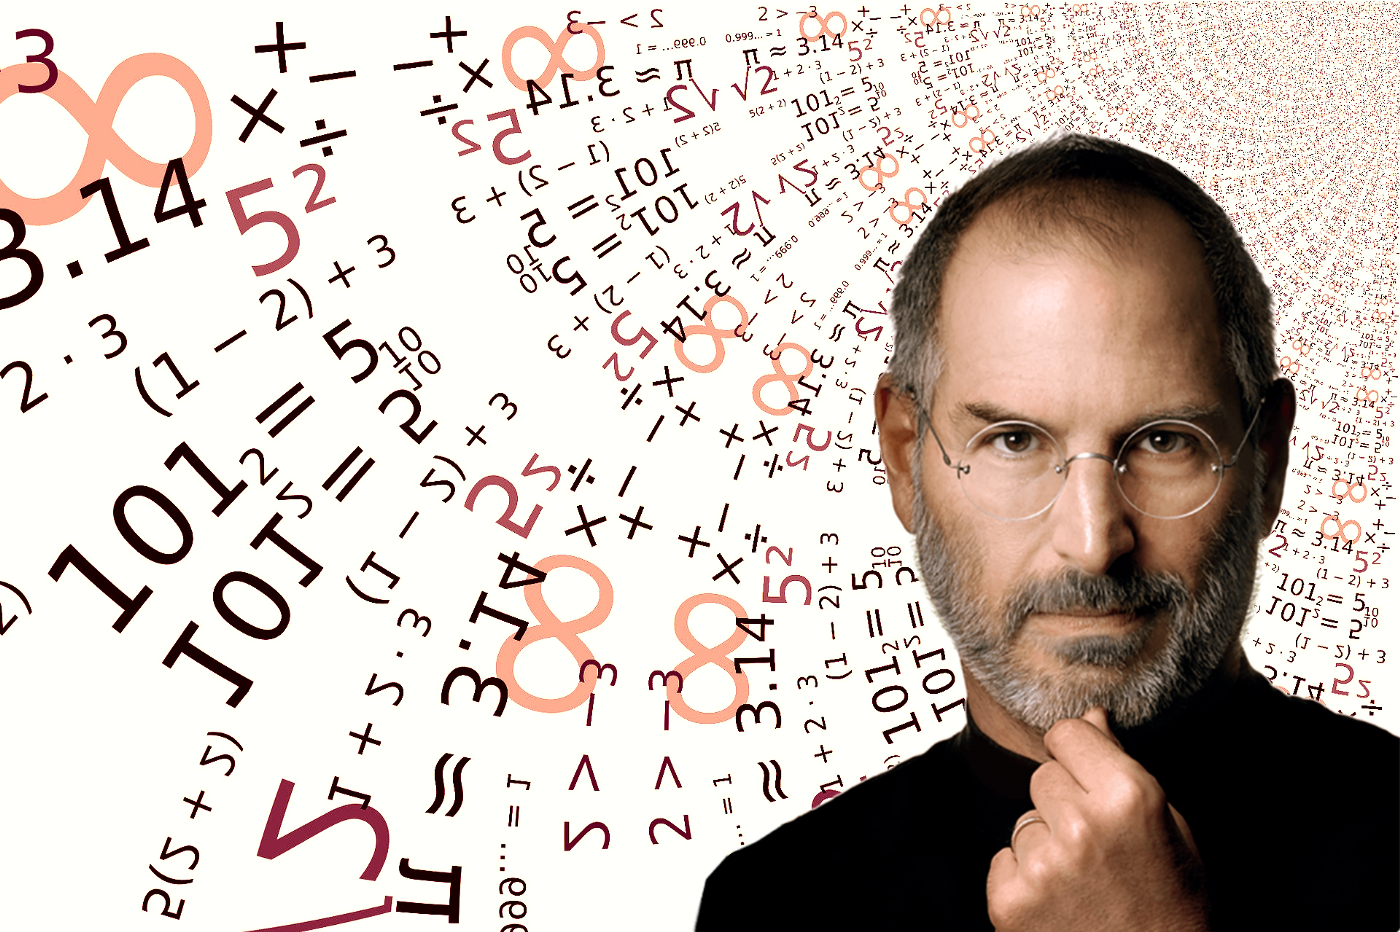 photo of Steve Jobs superimposed on a background of numbers and equations